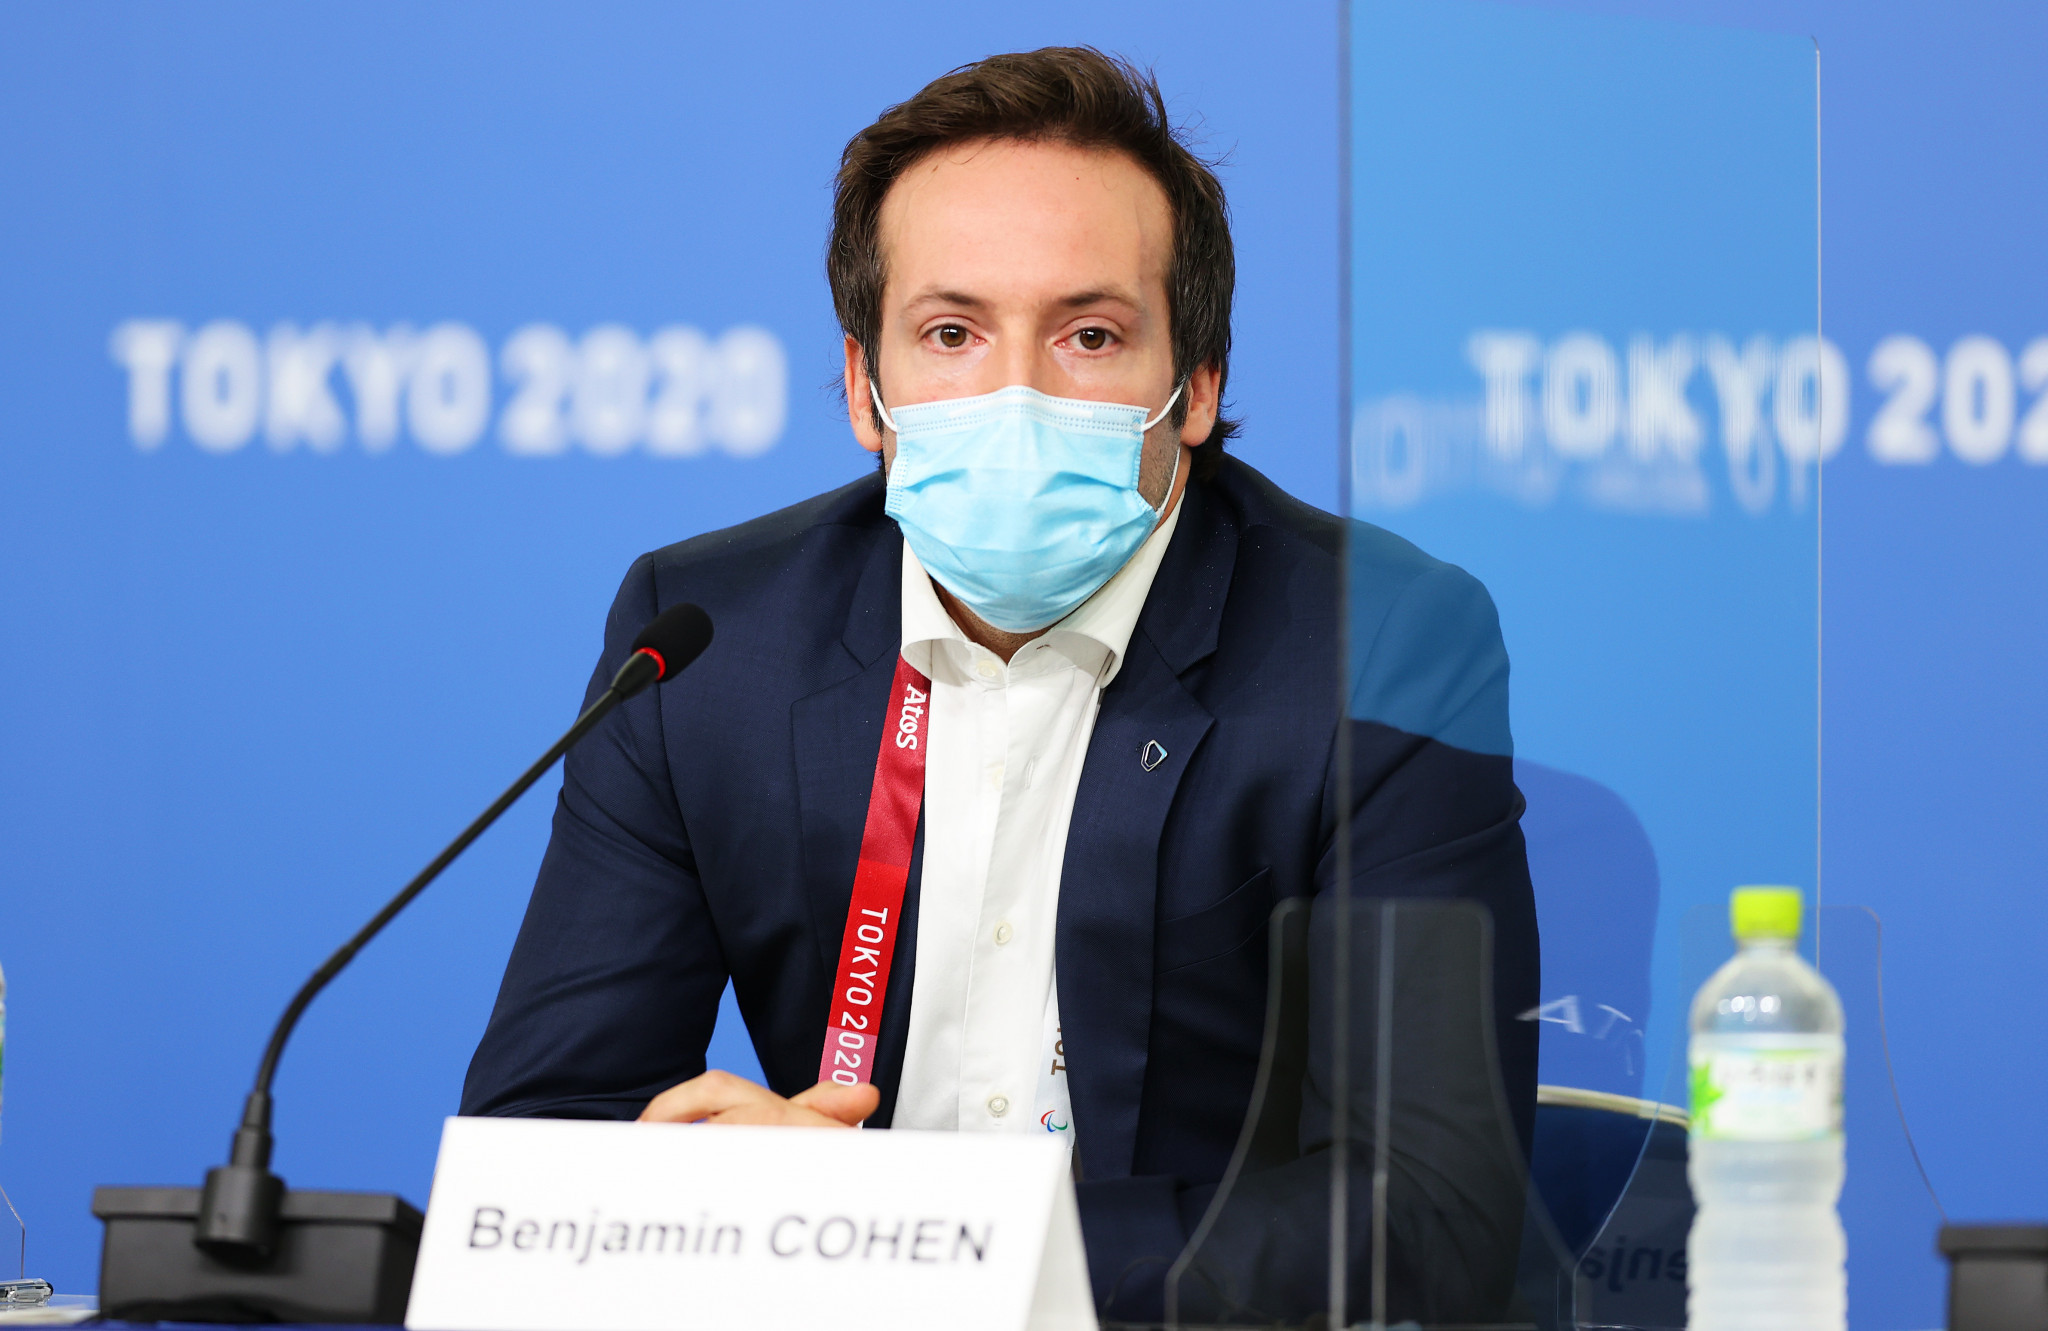 Russian Olympic Committee delegation among most tested prior to Tokyo 2020